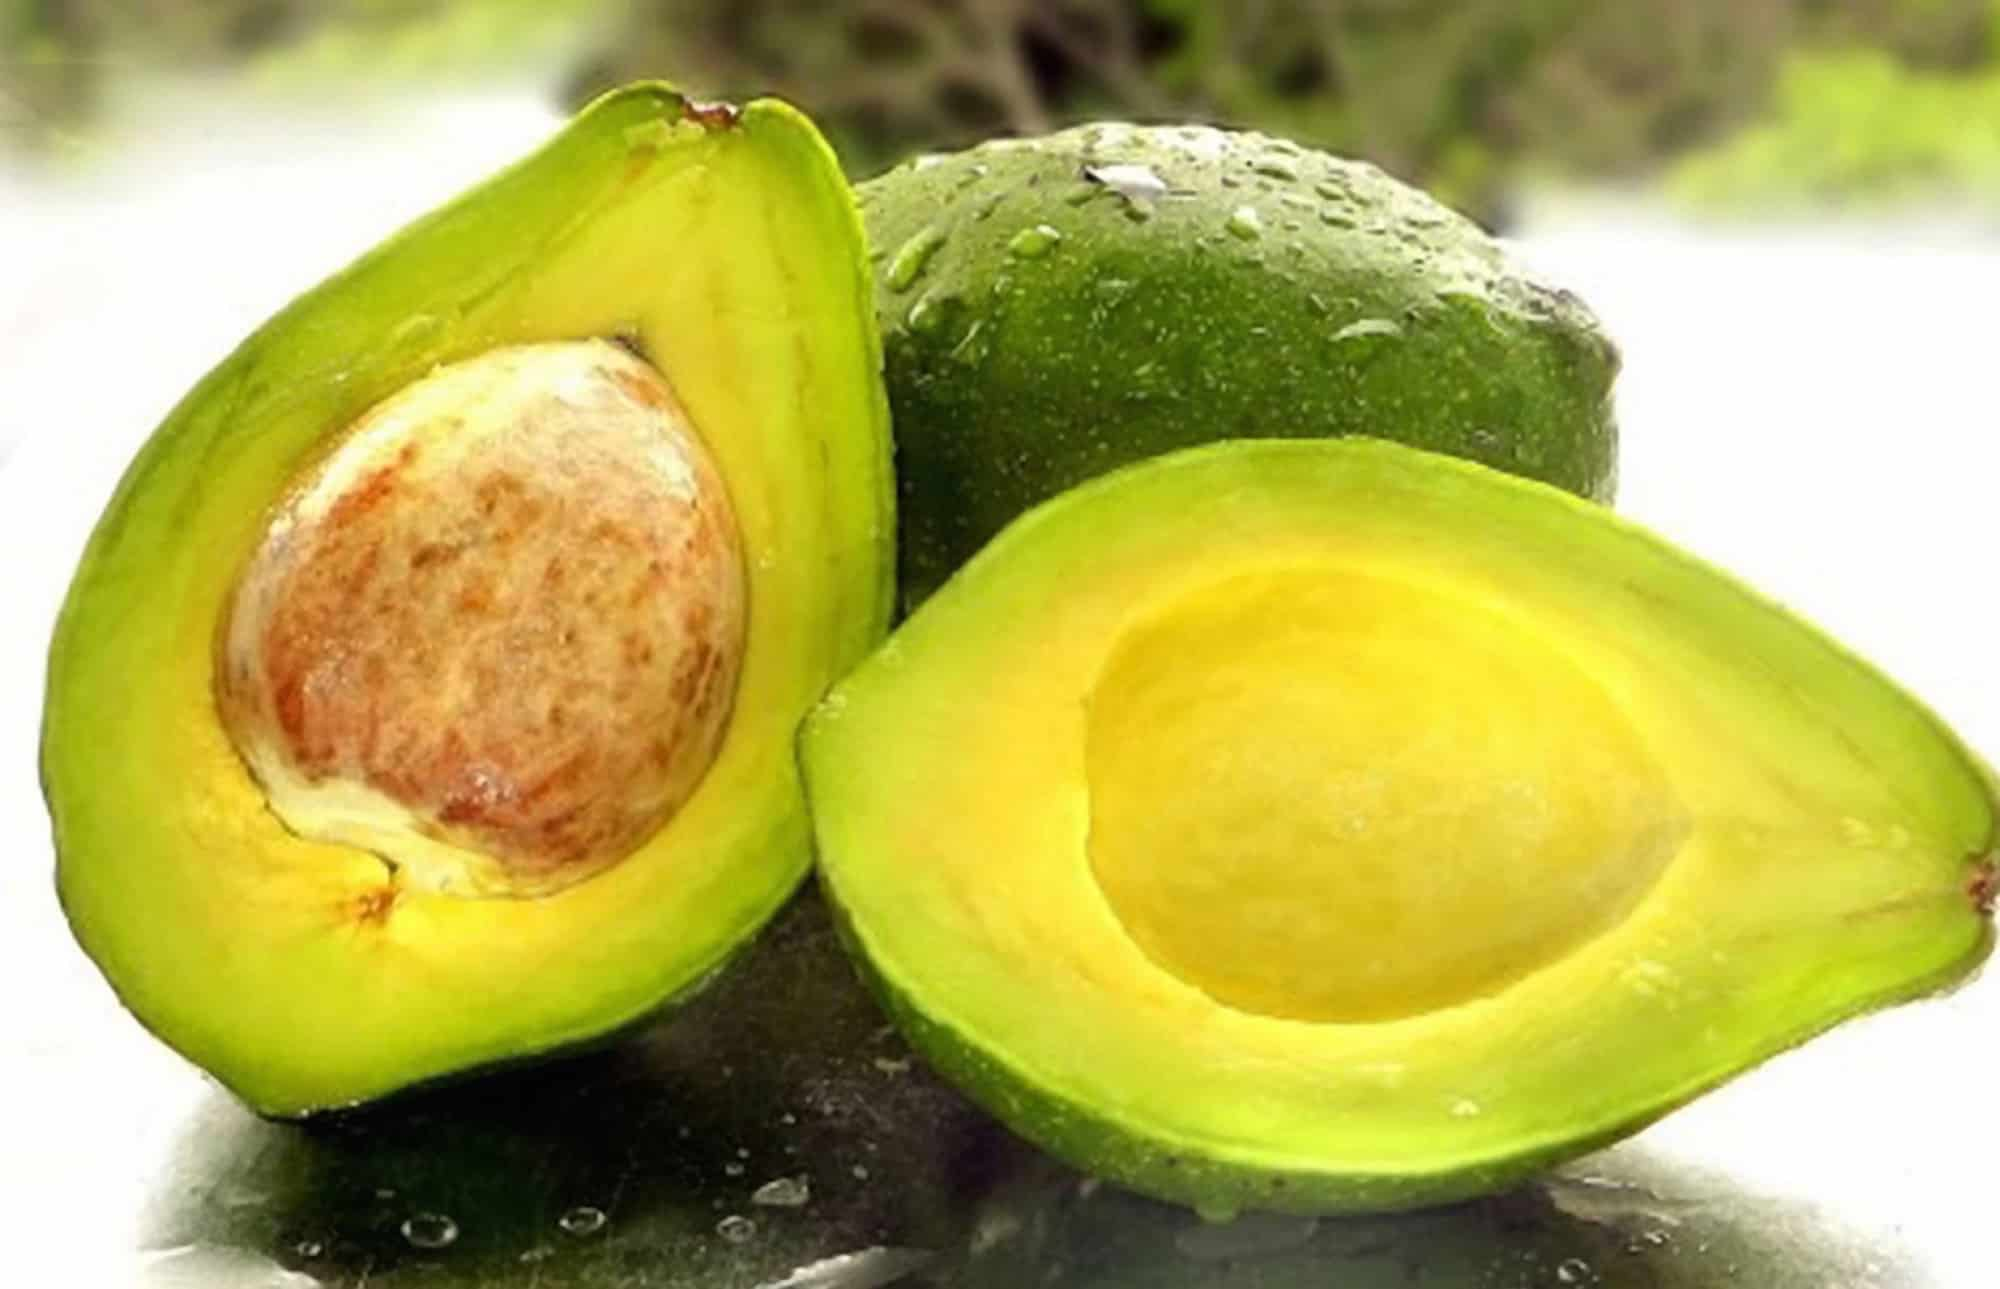 Hass avocado from Mexico